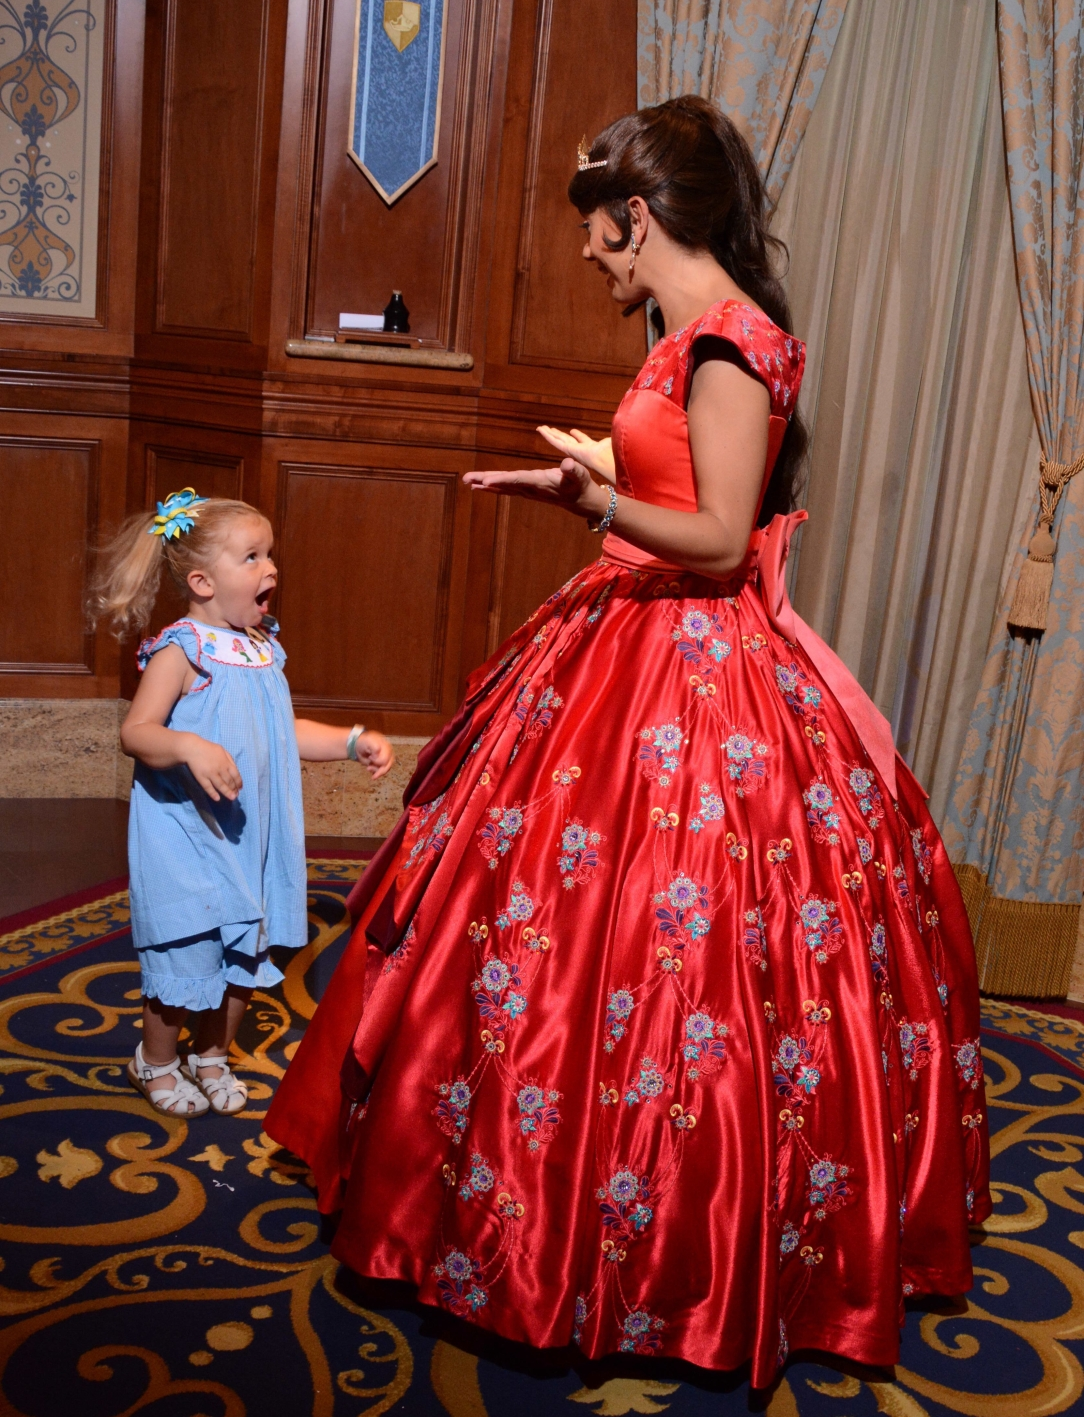 Everything To Know About Character Meet And Greets At Disney World